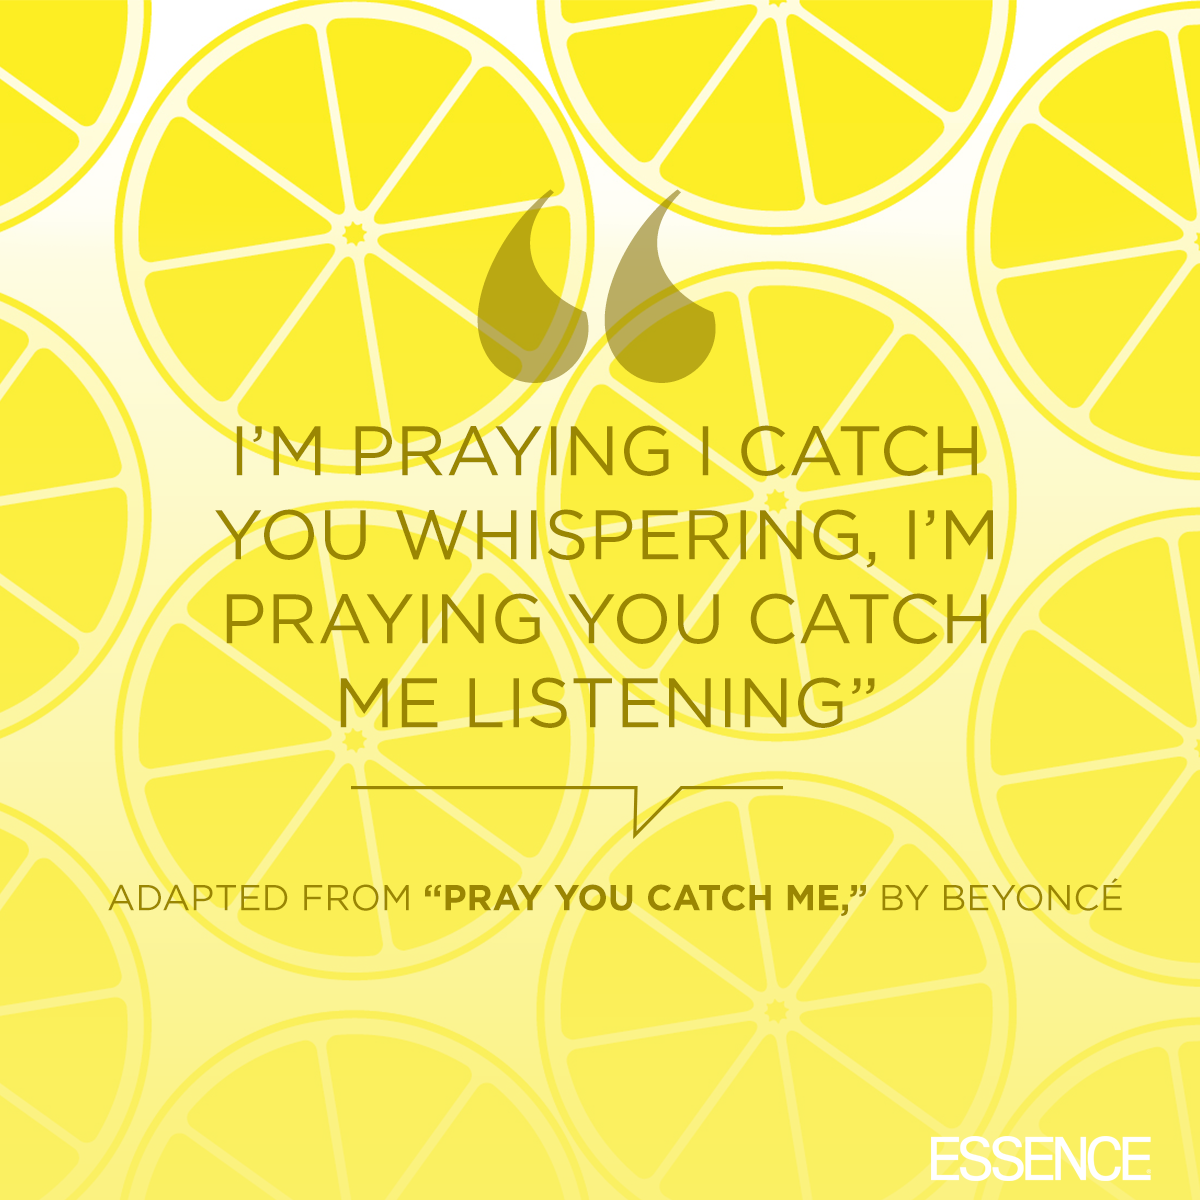 The 15 Most Unforgettable Lyrics From Beyonce's 'Lemonade